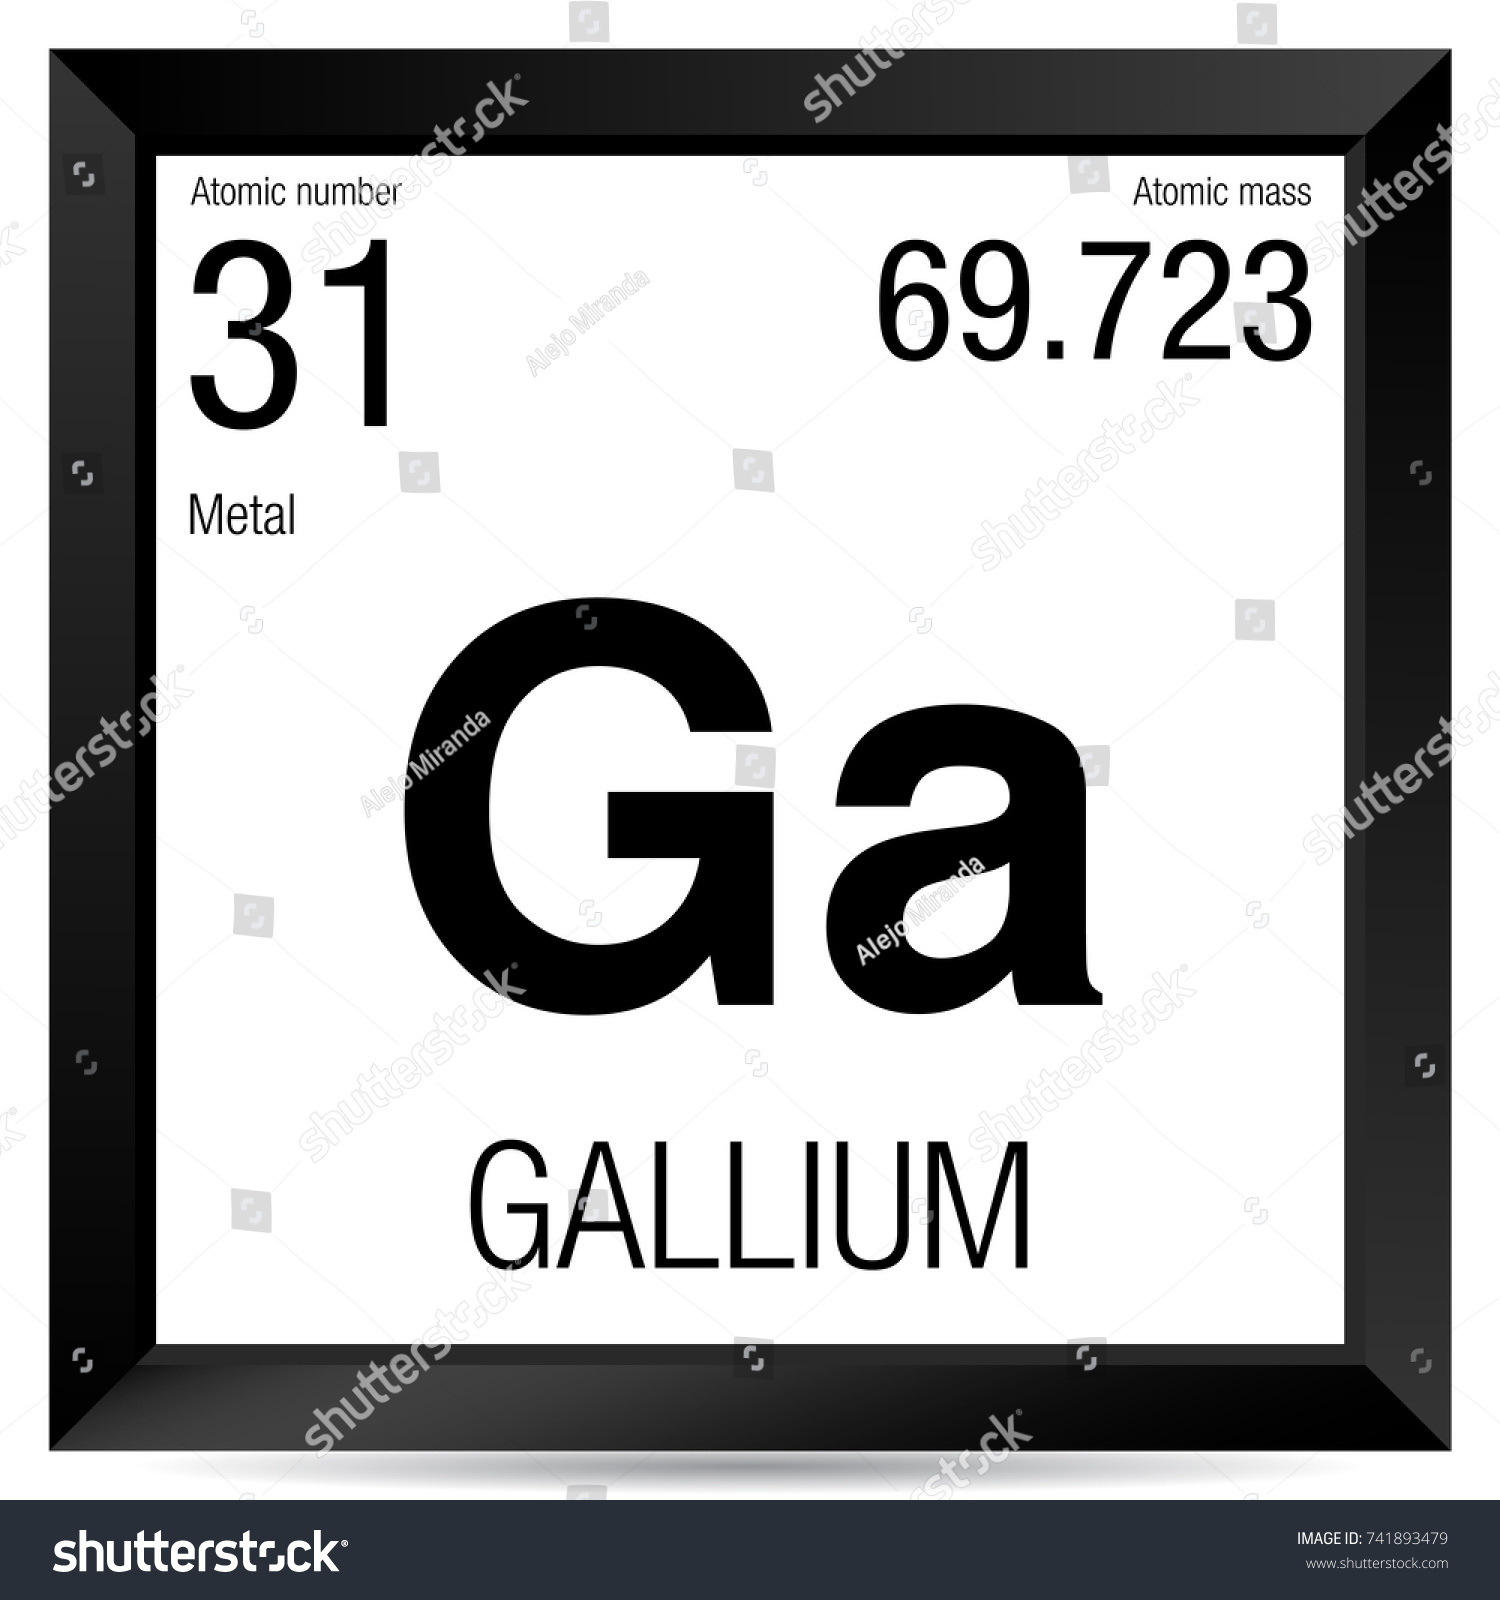 Periodic table of elements toms images periodic table images hobart k12 periodic table images periodic table images 31 periodic table images periodic table images gallium gamestrikefo Image collections